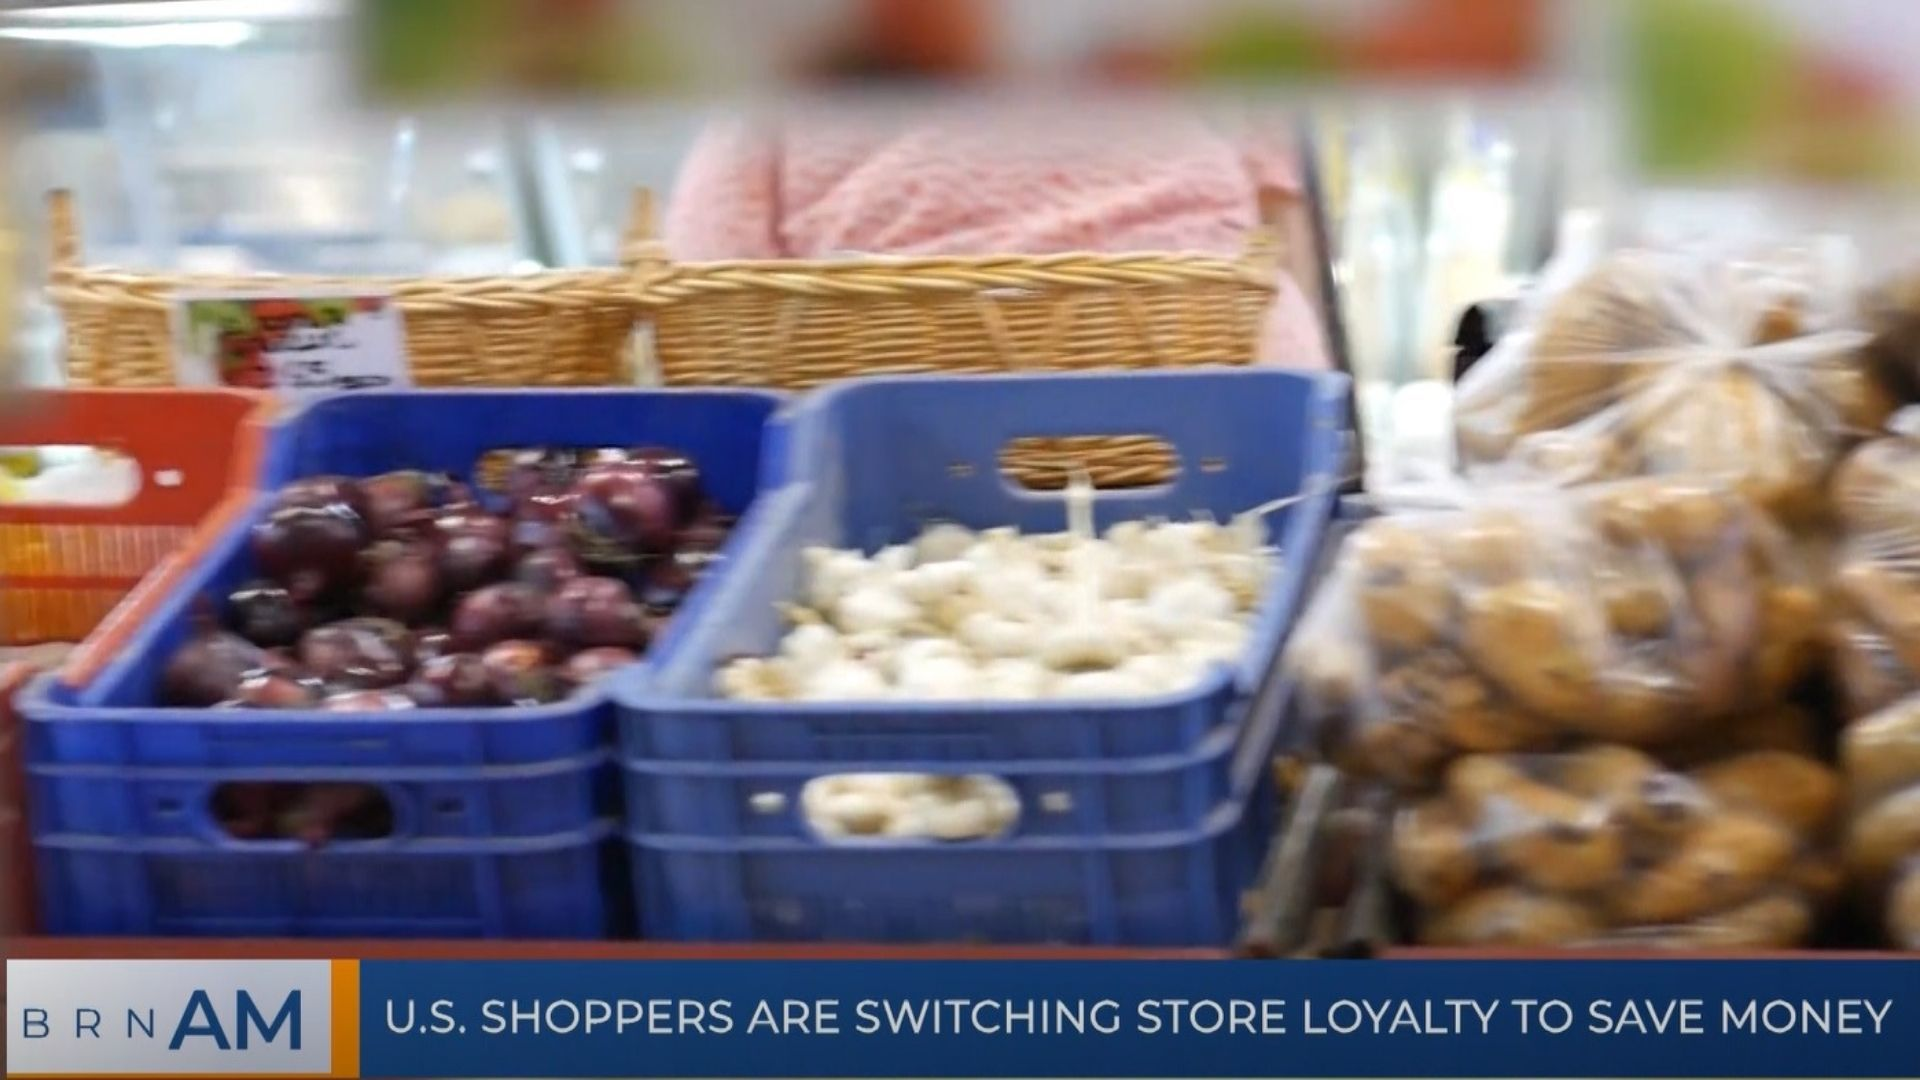 BRN AM   U.S. shoppers are switching store loyalty to save money